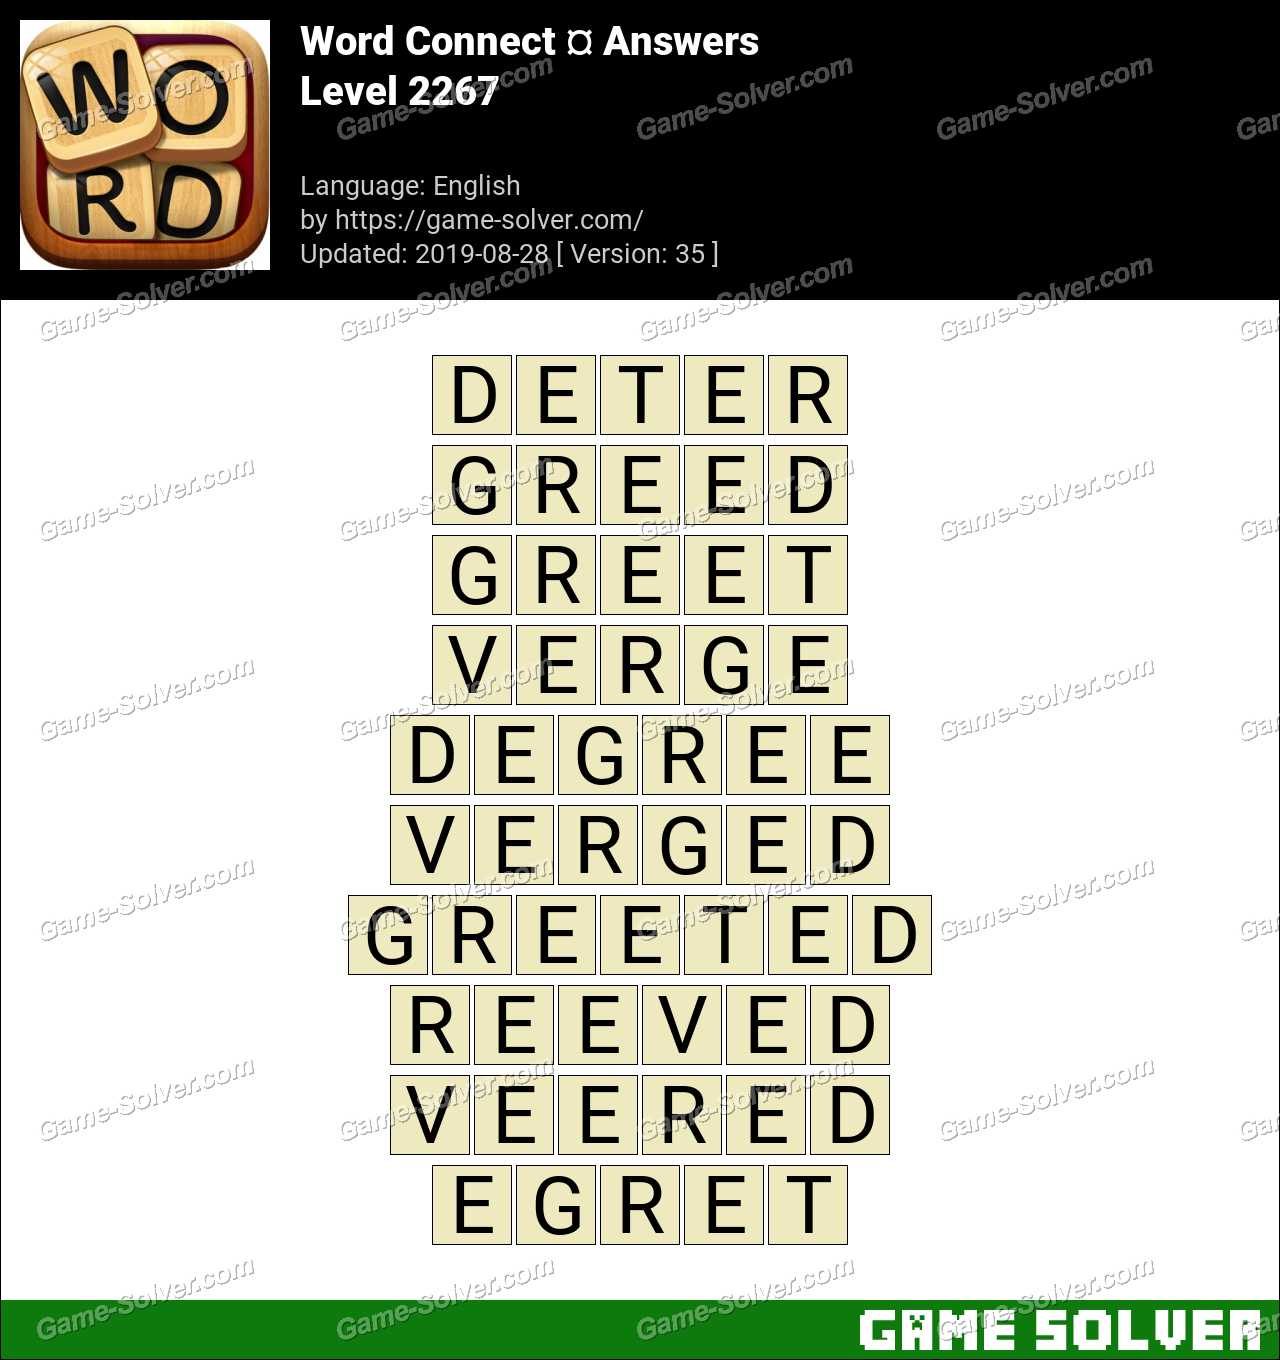 Word Connect Level 2267 Answers